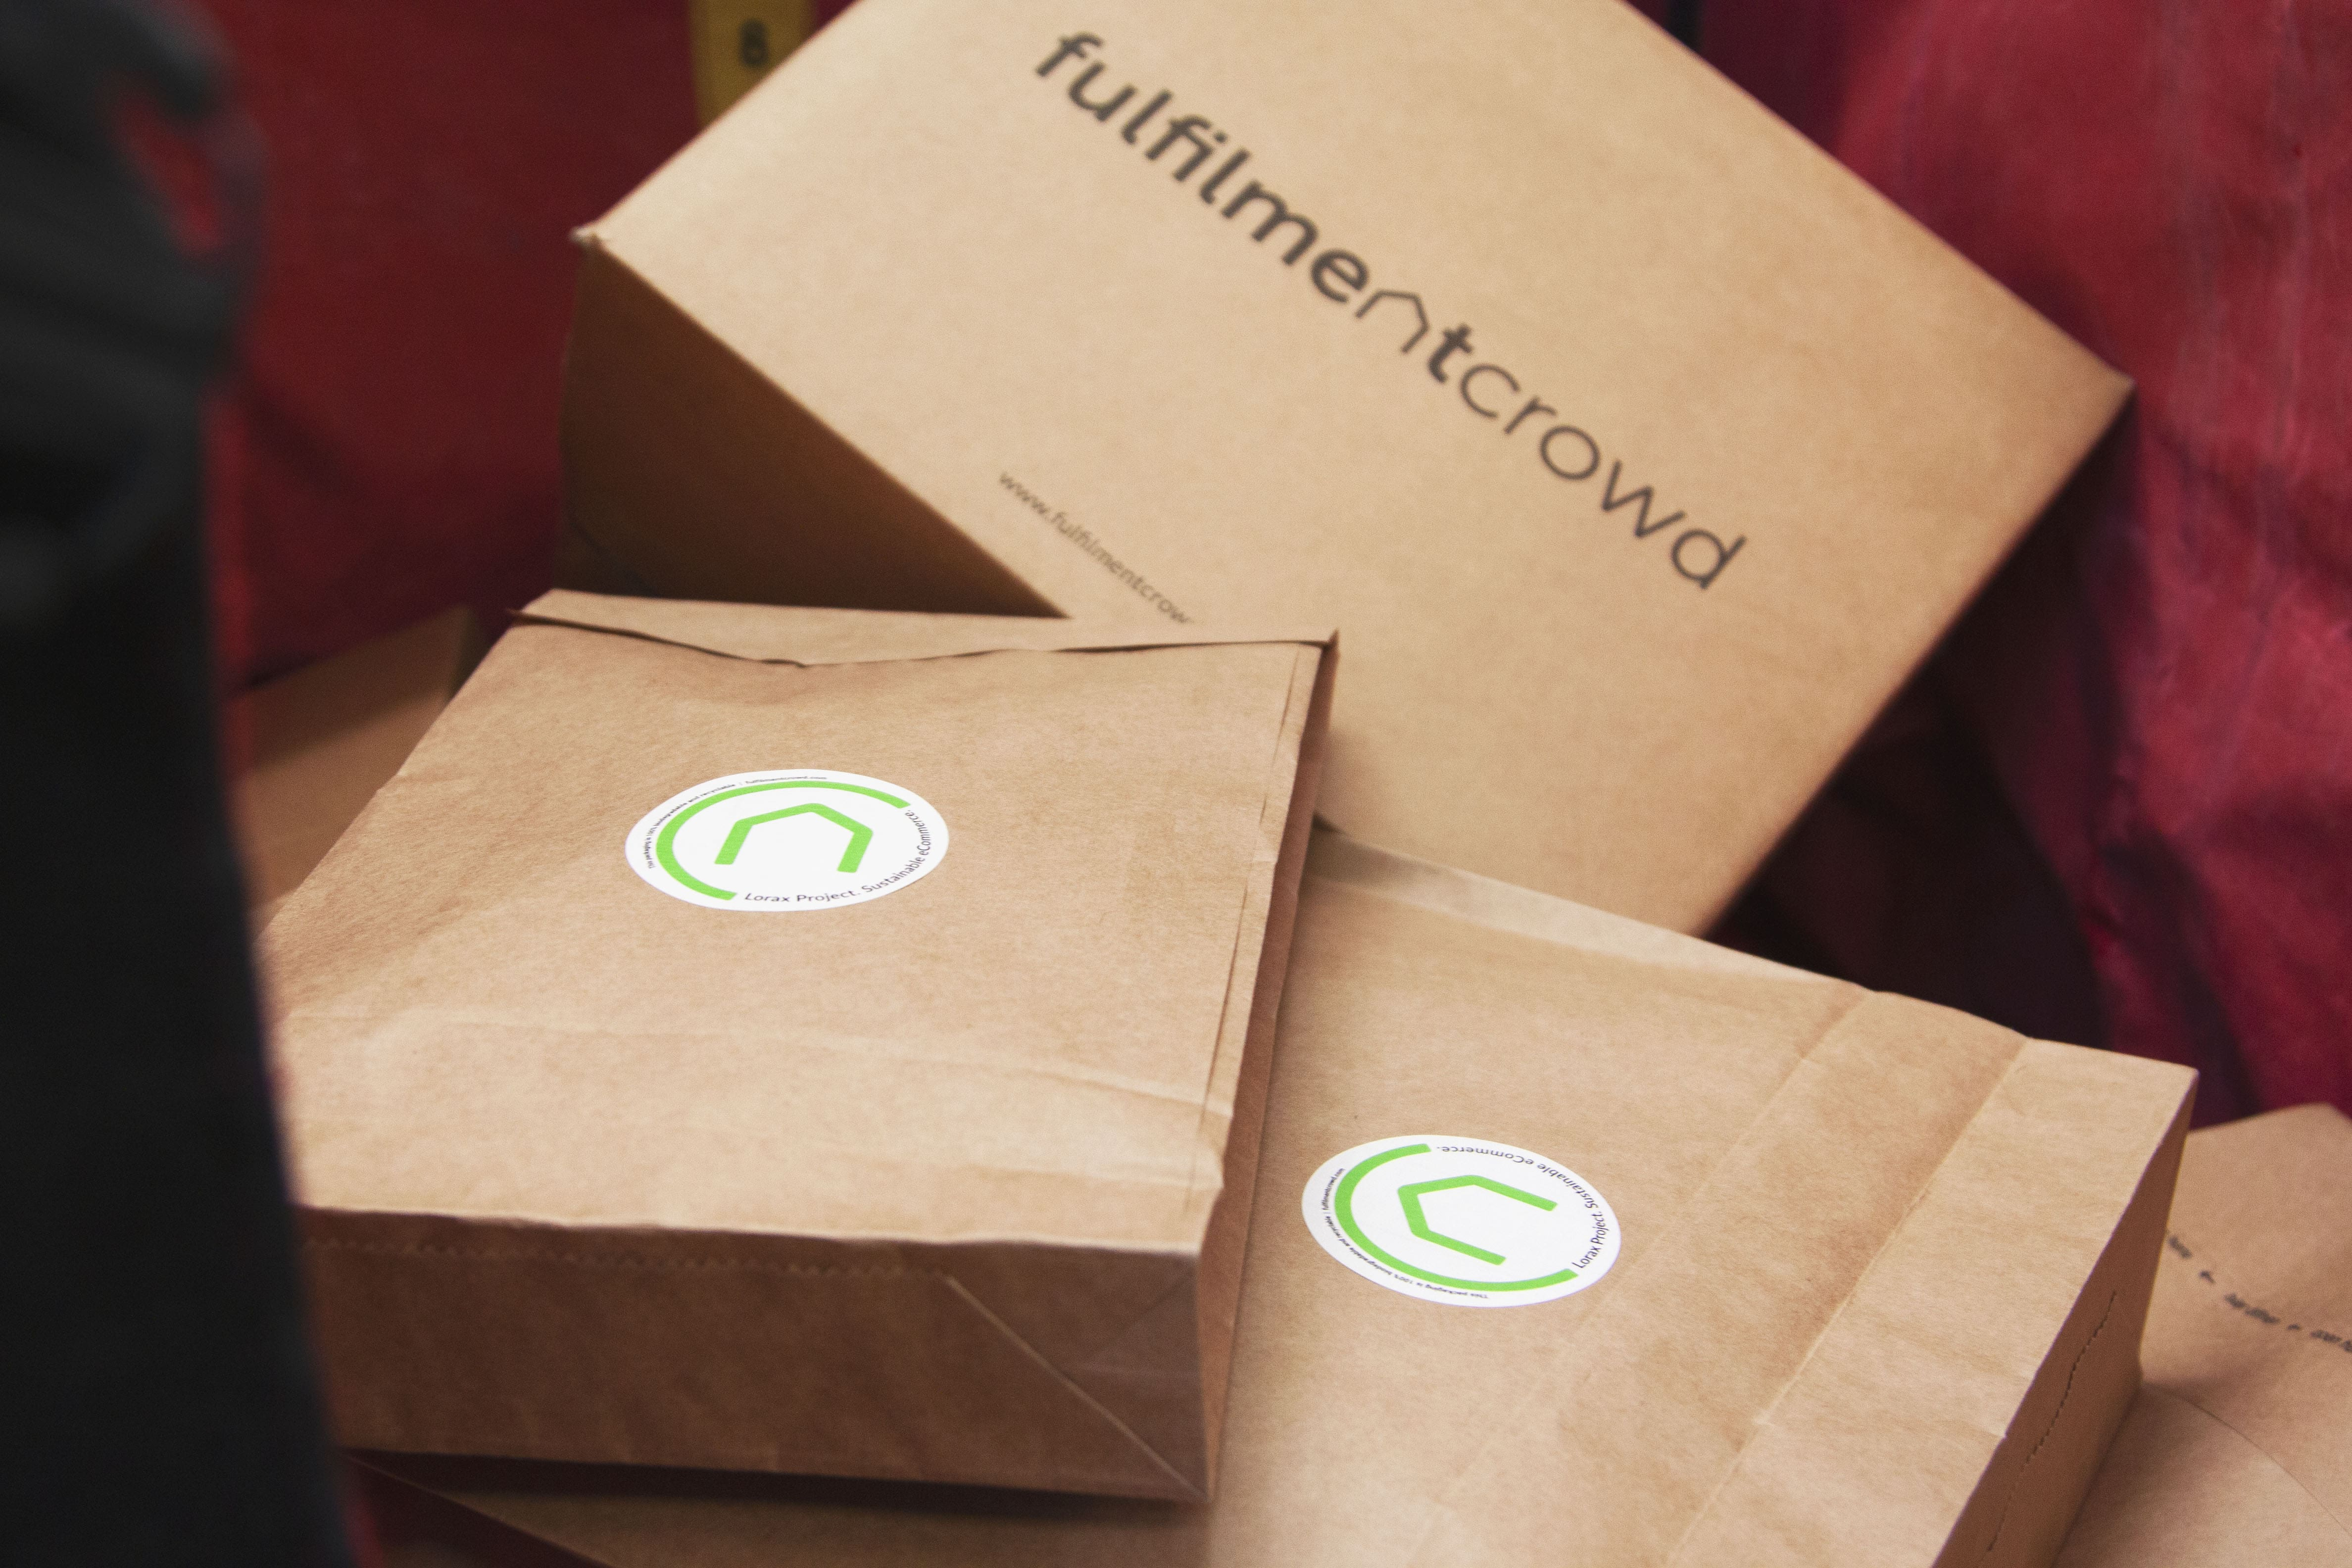 Introducing Biodegradable & Sustainable Packaging